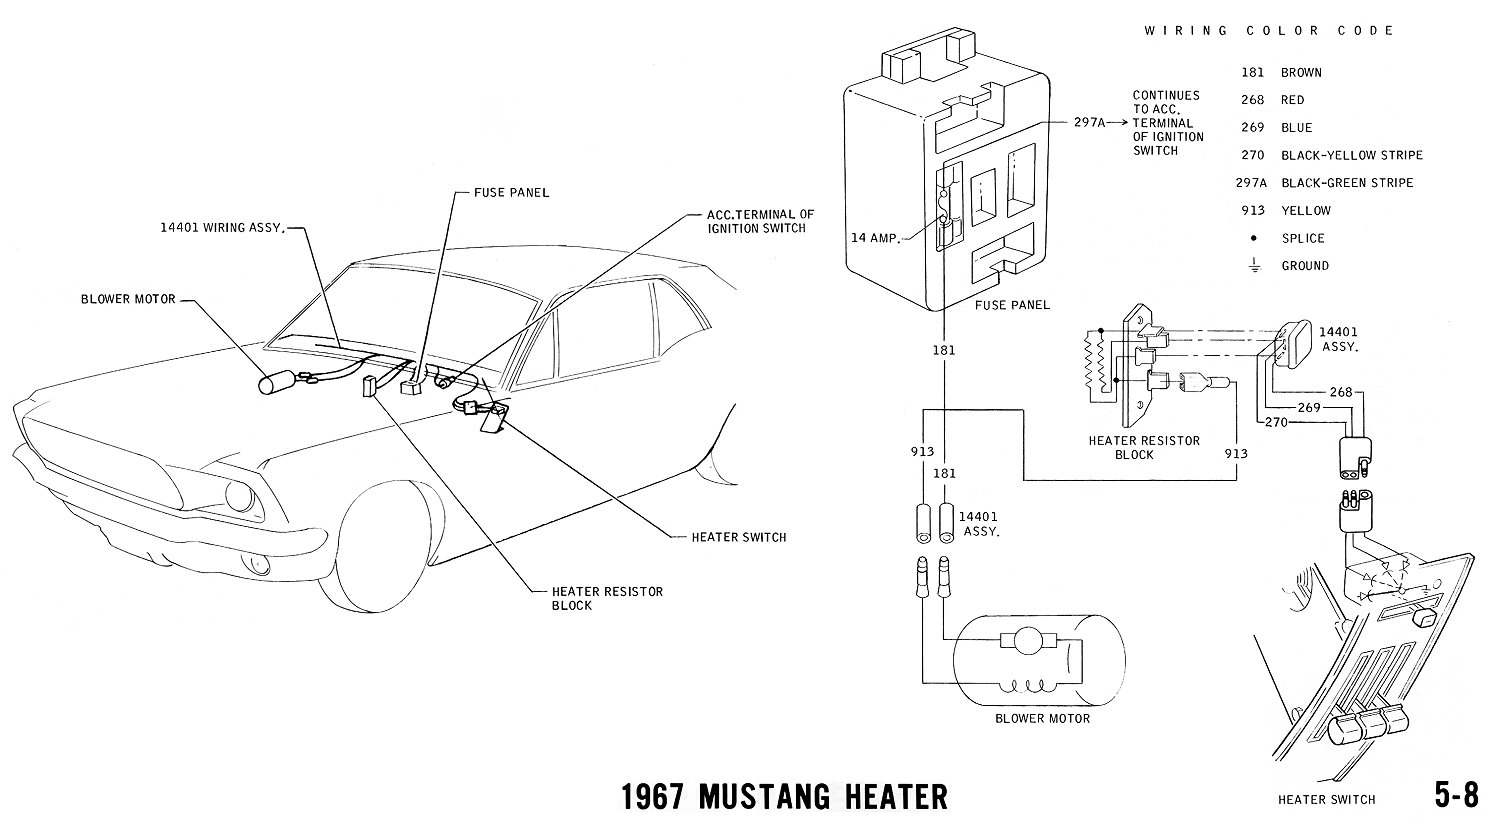 1967 Mustang Wiring And Vacuum Diagrams Average Joe Restoration 1992 Ford Ranger 2 3l Engine Pictorial Schematic